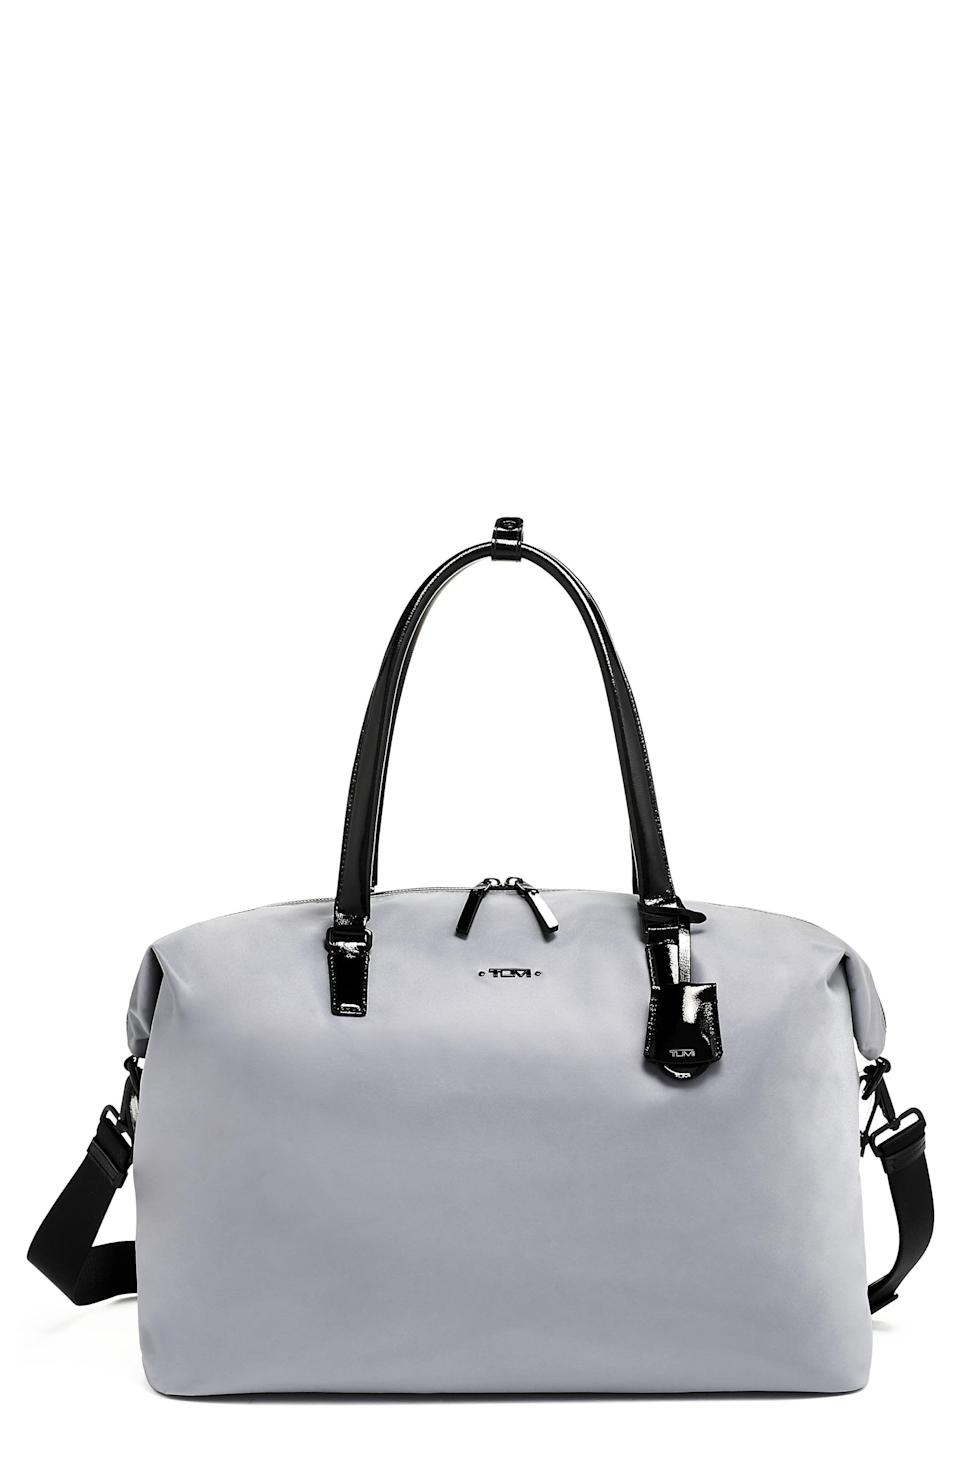 """<p><strong>Tumi</strong></p><p>nordstrom.com</p><p><a href=""""https://go.redirectingat.com?id=74968X1596630&url=https%3A%2F%2Fwww.nordstrom.com%2Fs%2Ftumi-wynne-duffle-bag%2F5867524&sref=https%3A%2F%2Fwww.esquire.com%2Fstyle%2Fmens-fashion%2Fg37002225%2Fnordstrom-anniversary-sale-mens-fashion-deals-2021%2F"""" rel=""""nofollow noopener"""" target=""""_blank"""" data-ylk=""""slk:Shop Now"""" class=""""link rapid-noclick-resp"""">Shop Now</a></p><p><strong>Sale: </strong><strong>$263.90</strong></p><p><strong>After Sale: $395.00</strong></p><p>The perfect duffle for weekends, long flights, or any other excursion you have this summer. </p>"""